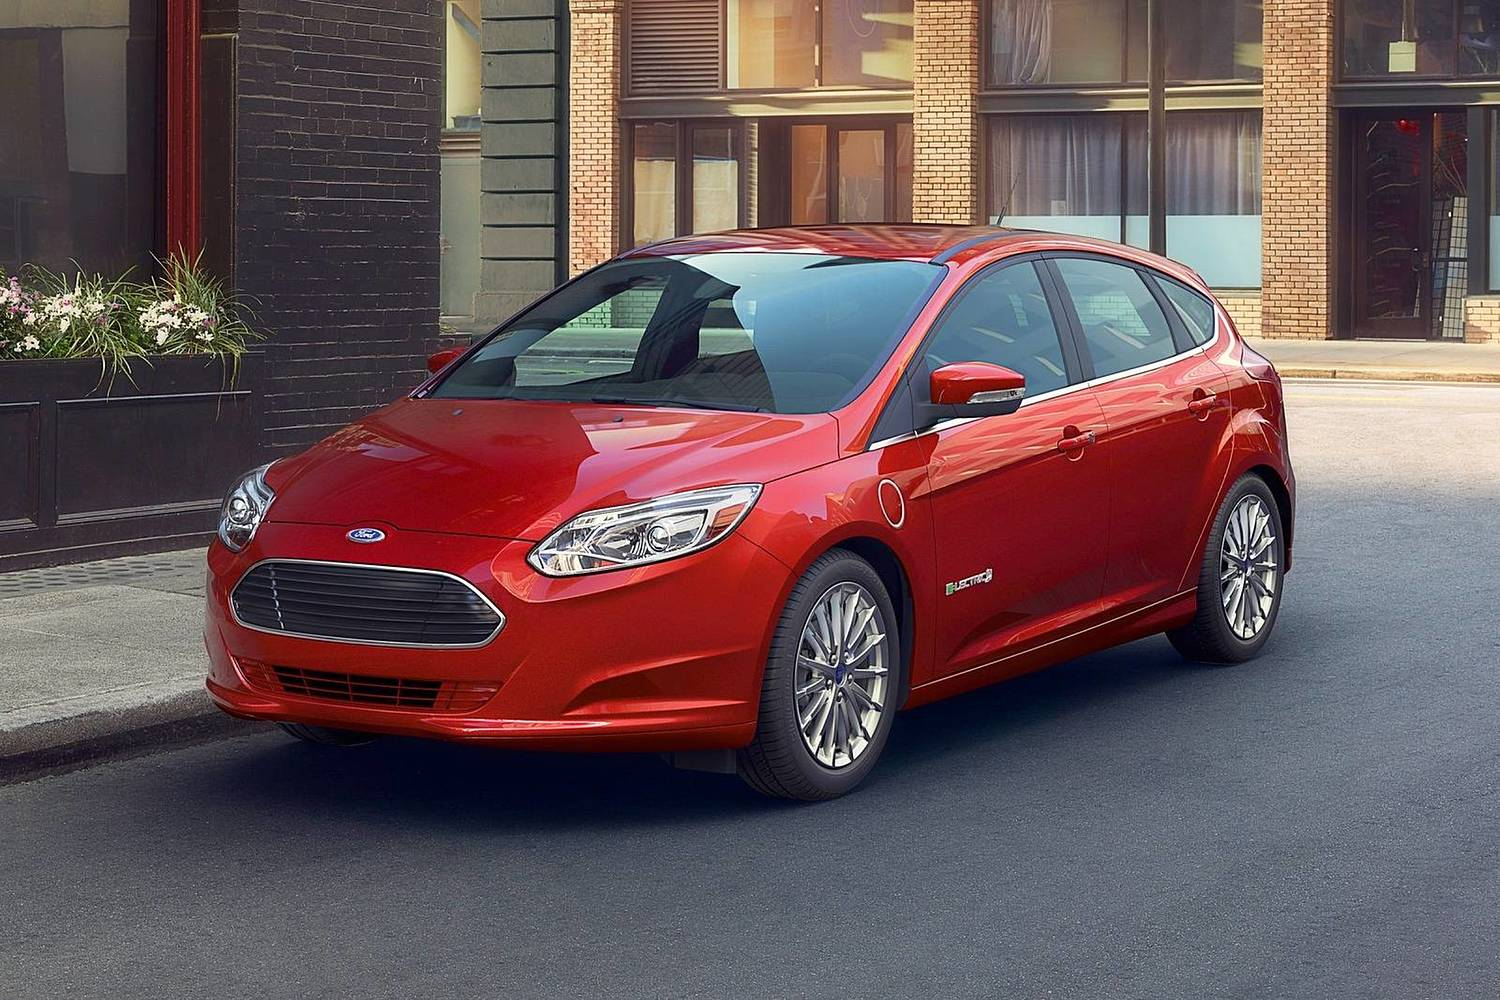 Ford Focus Electric 4dr Hatchback Exterior (2017 model year shown)